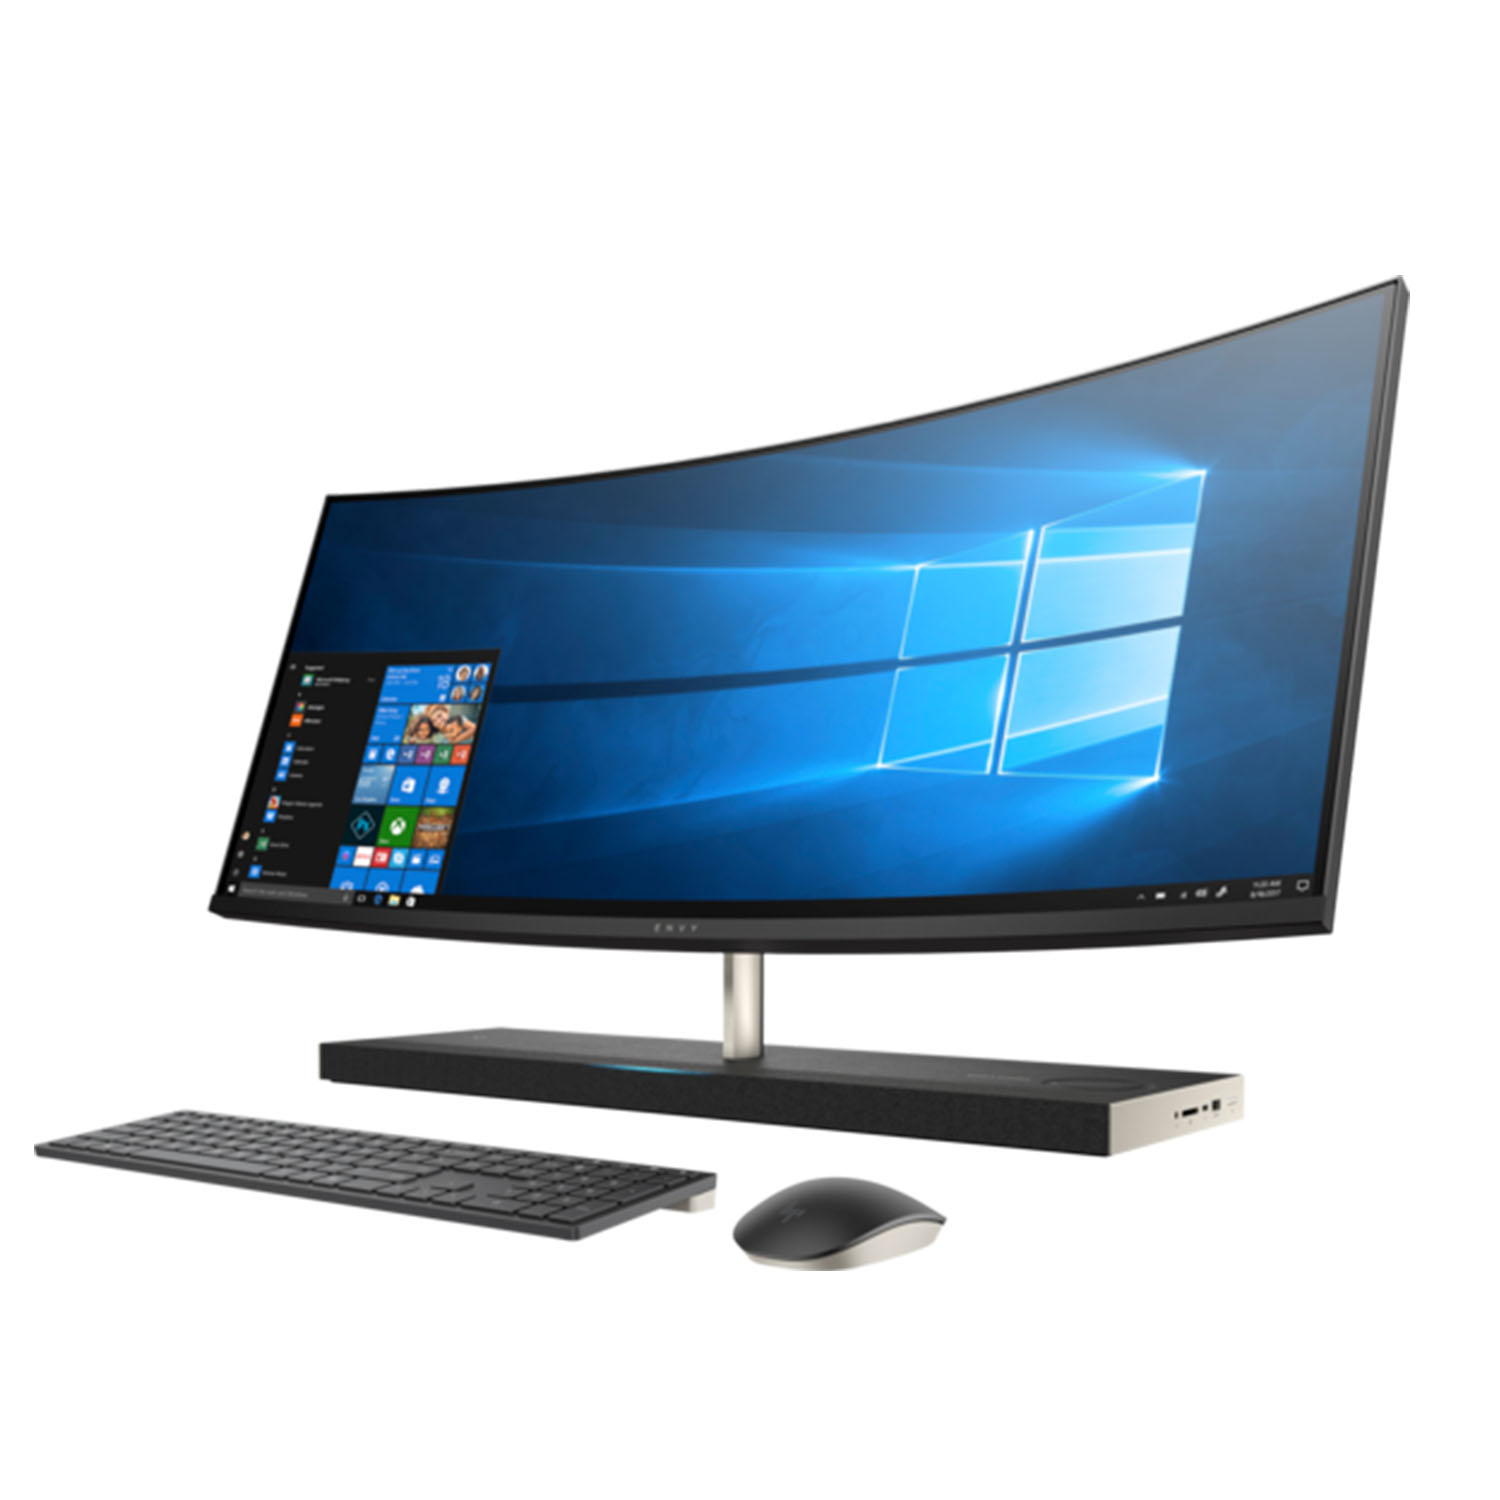 HP Envy 34 Curved Premium All-in-One AIO Desktop (Intel 8th Gen i7-8700T 6-Core, 16GB RAM, 1TB HDD + 256GB PCIe SSD, GeForce GTX 1050 4GB, 34 inch Curved QHD 3440 x 1440, WiFi, Bluetooth, Win 10 Home)